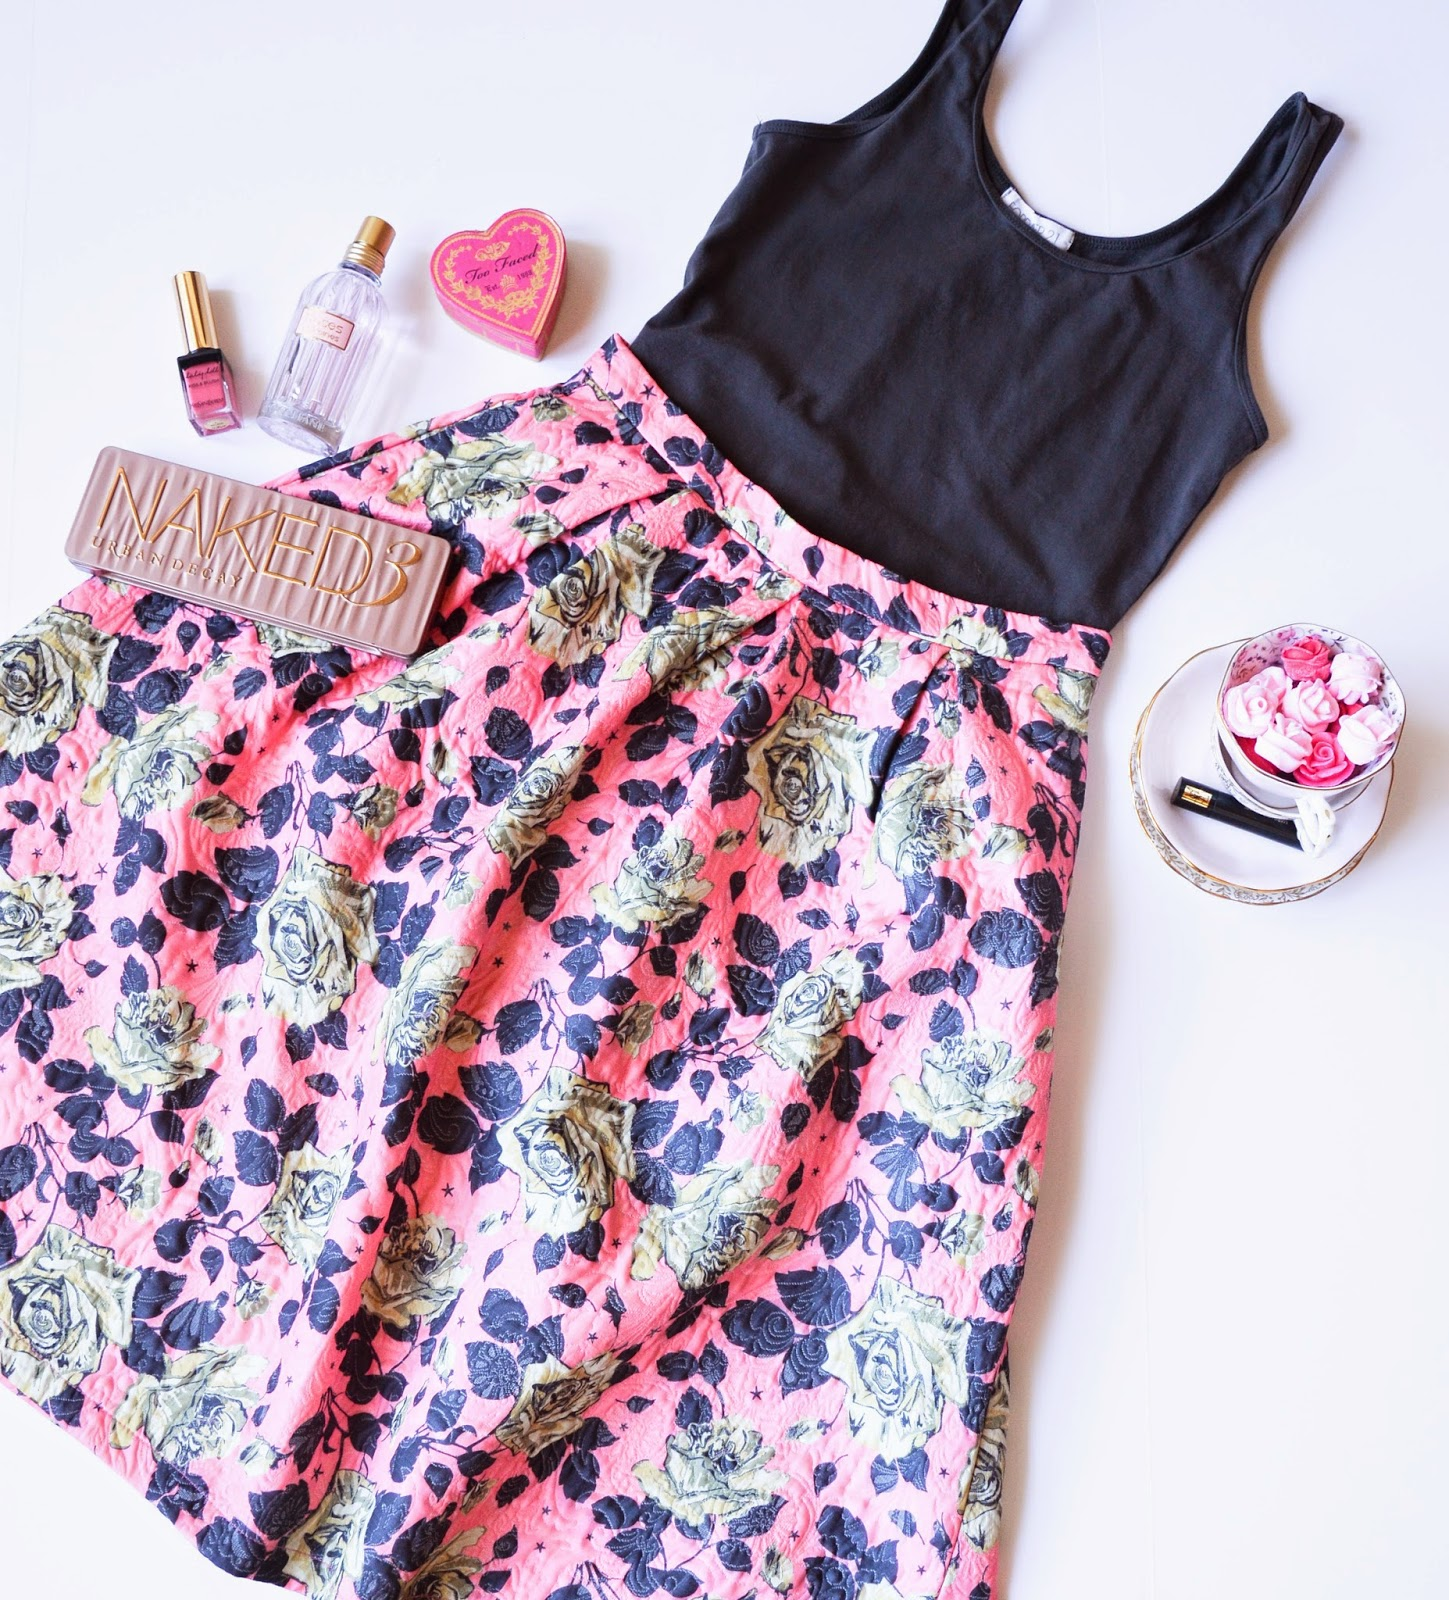 Pink and gray floral midi skirt from forever 21, paired with gray top